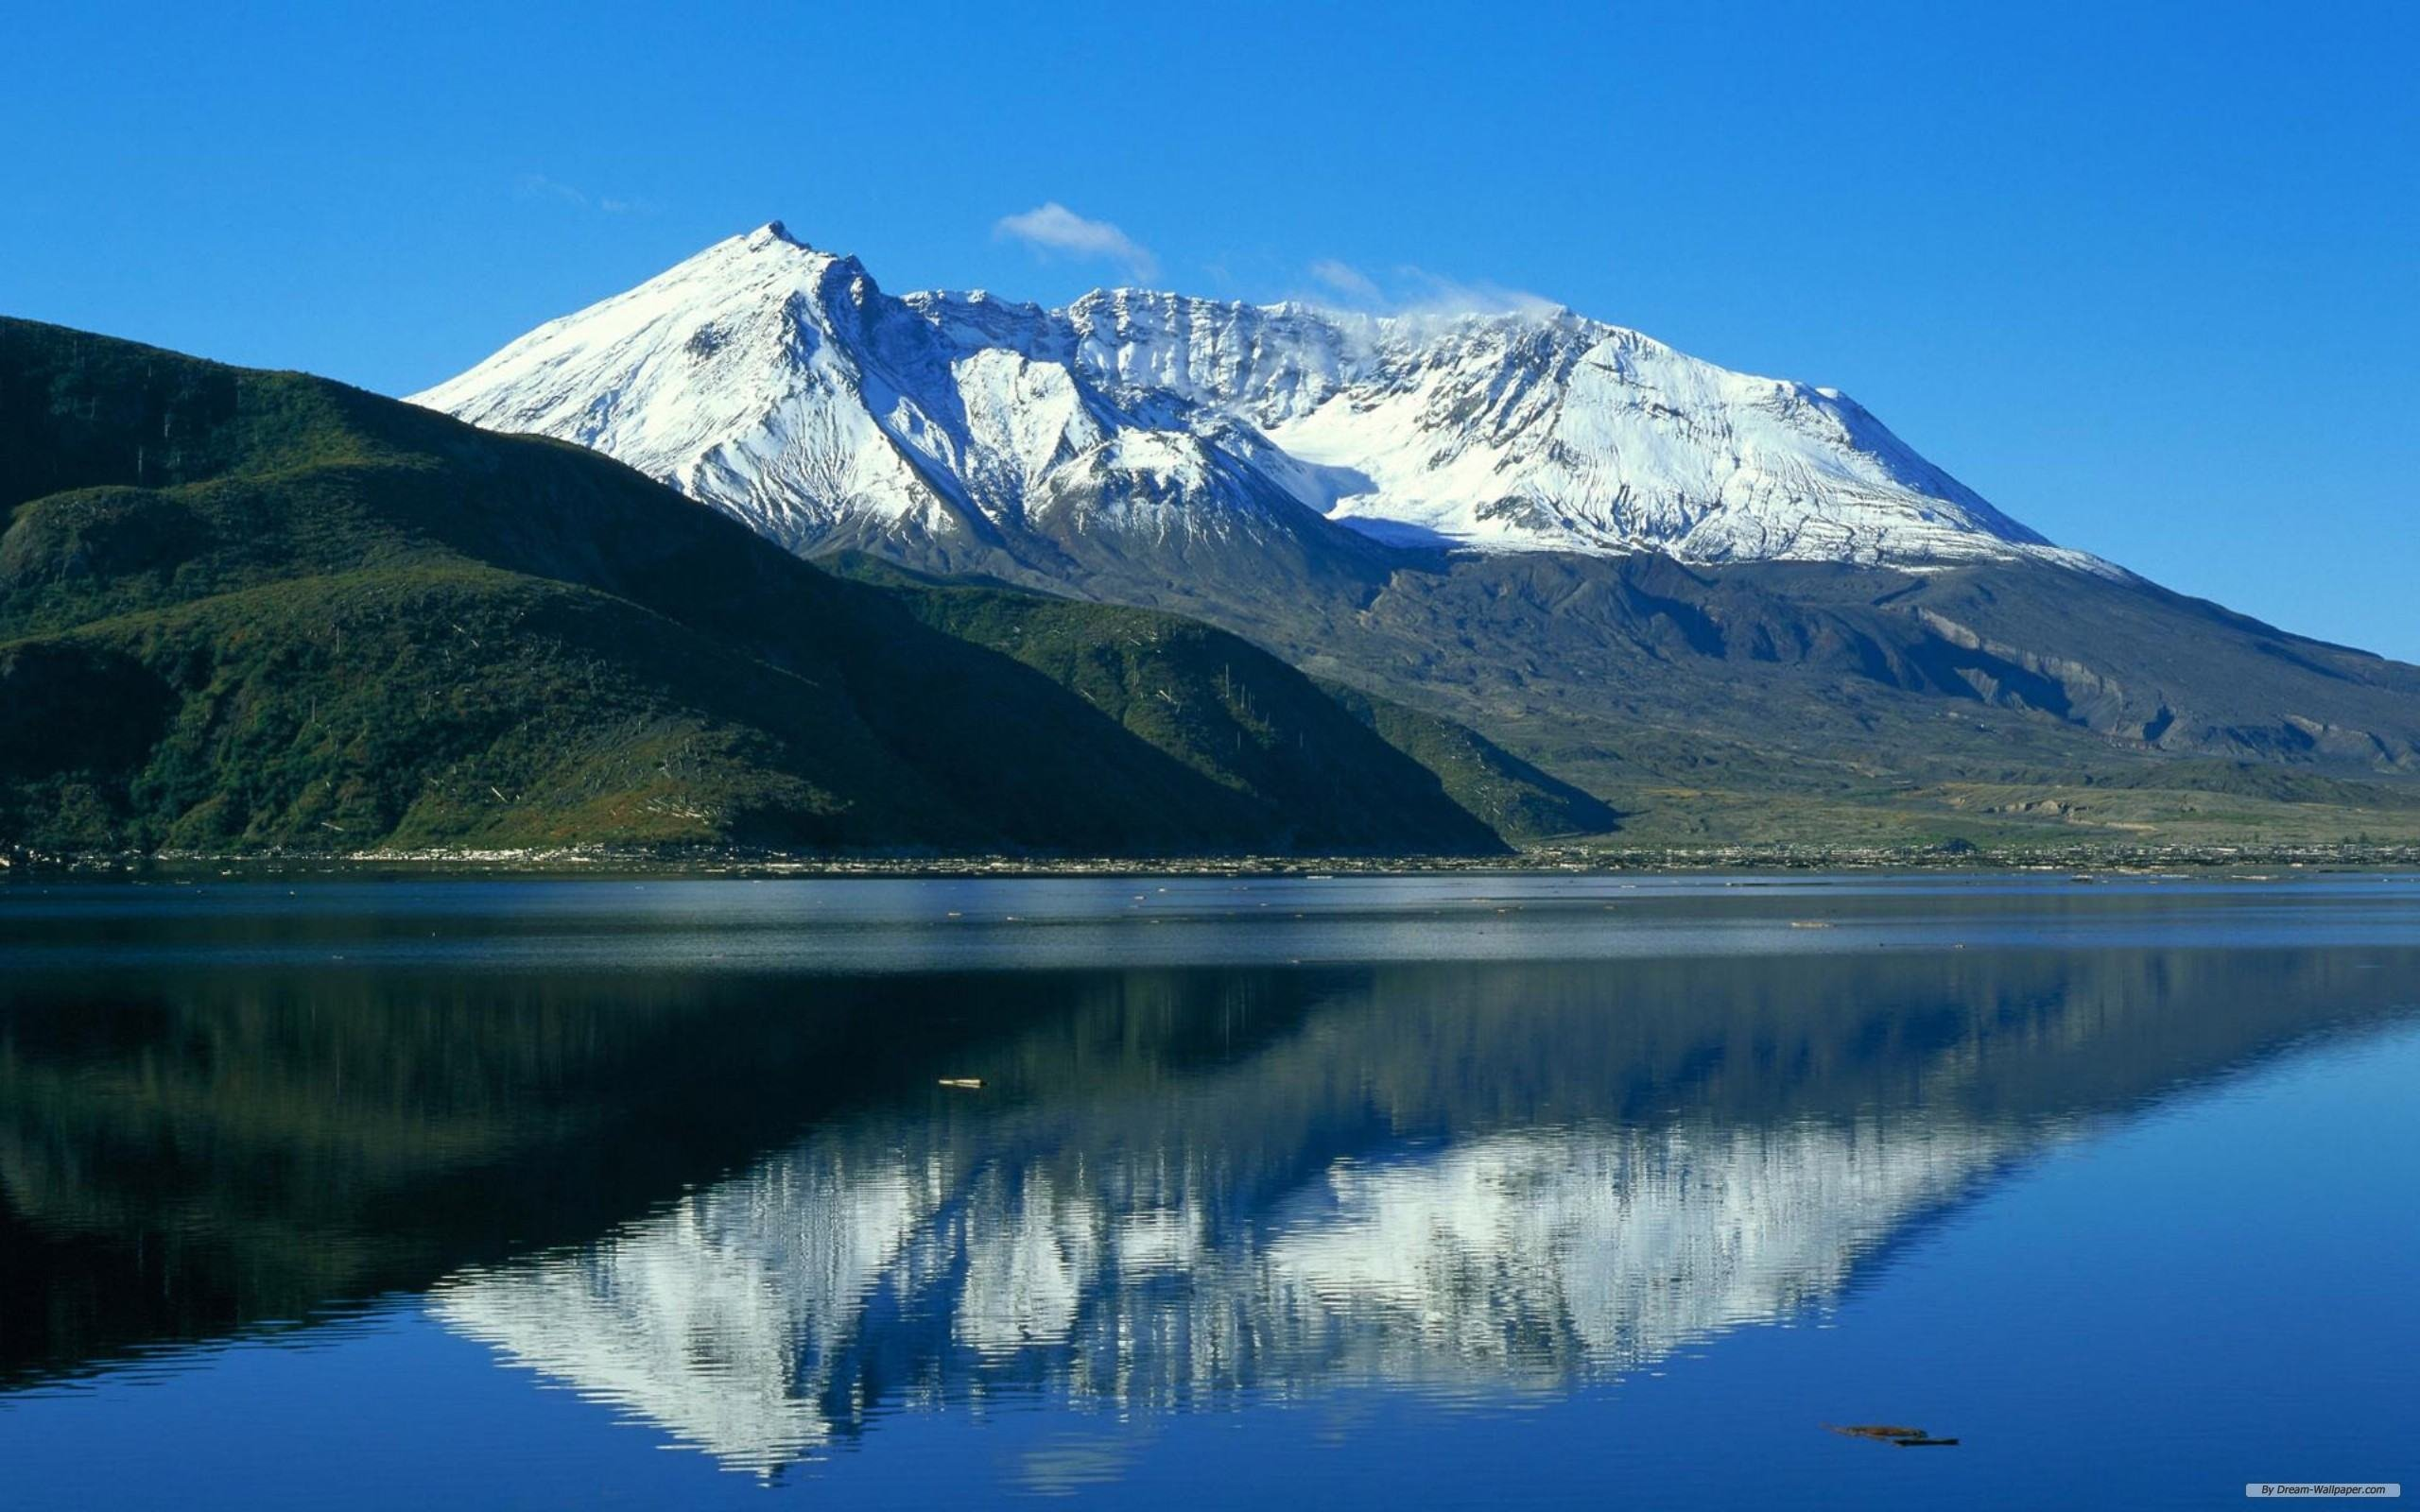 download Mount St Helens Wallpapers and Background Images 2560x1600